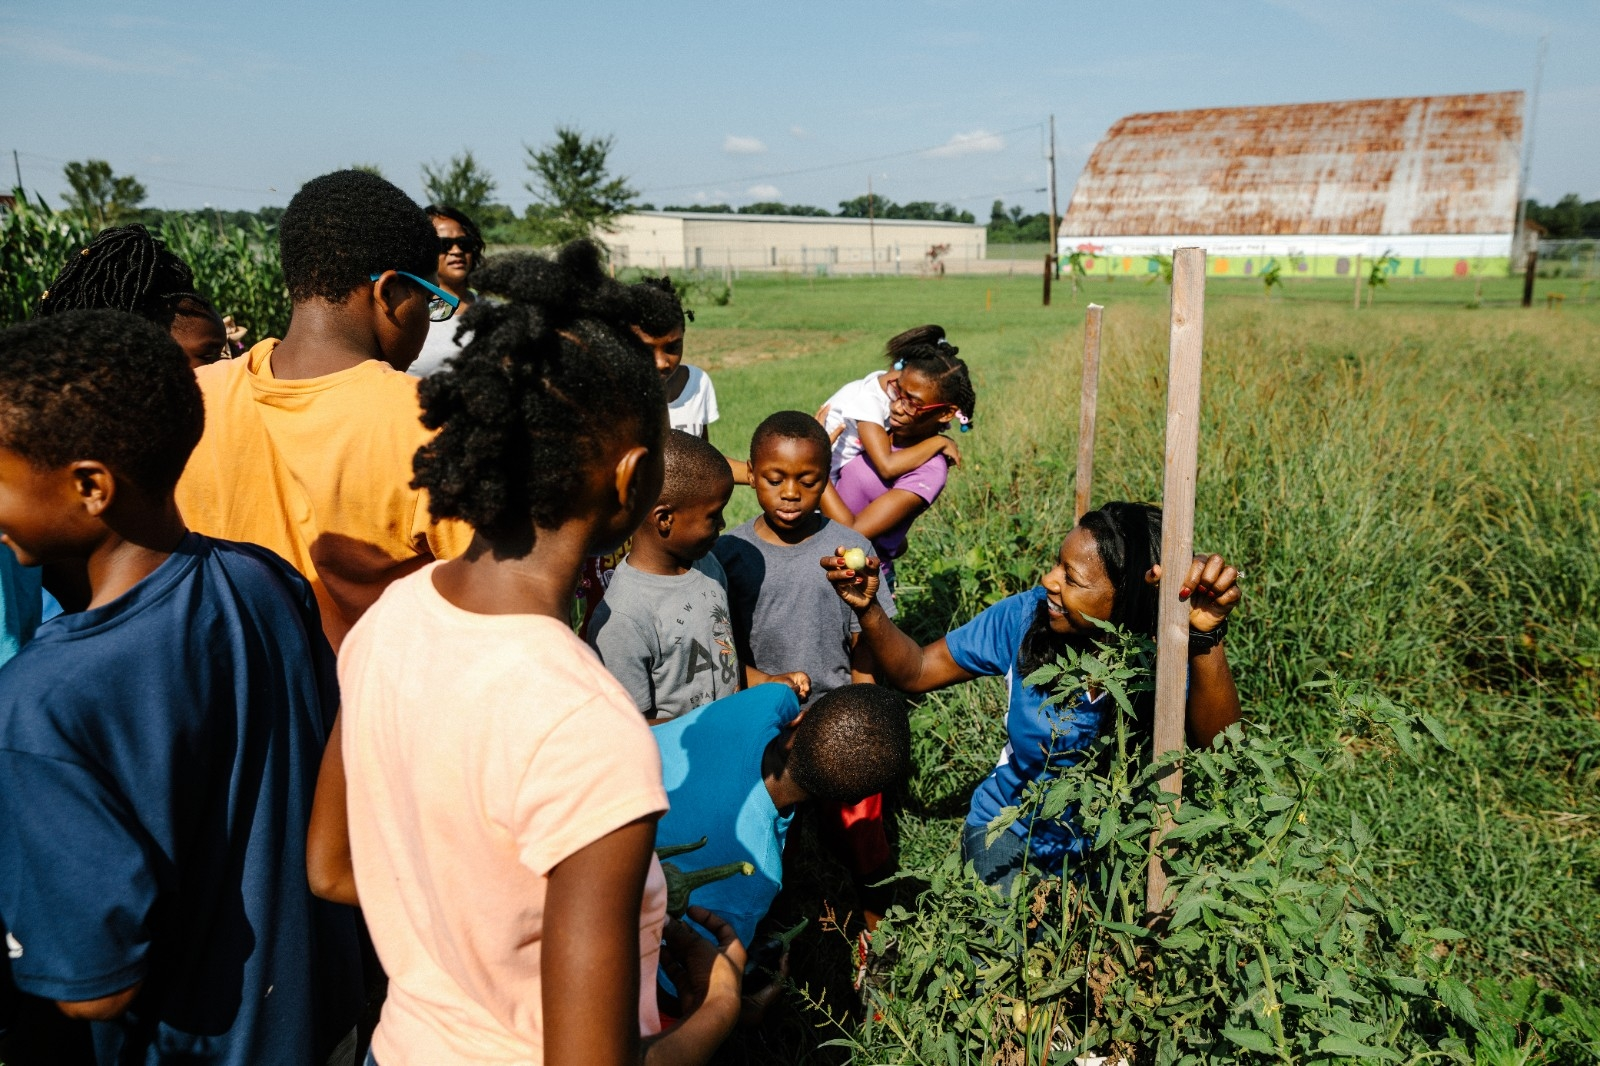 A group of children explore a community garden in a farmland setting.